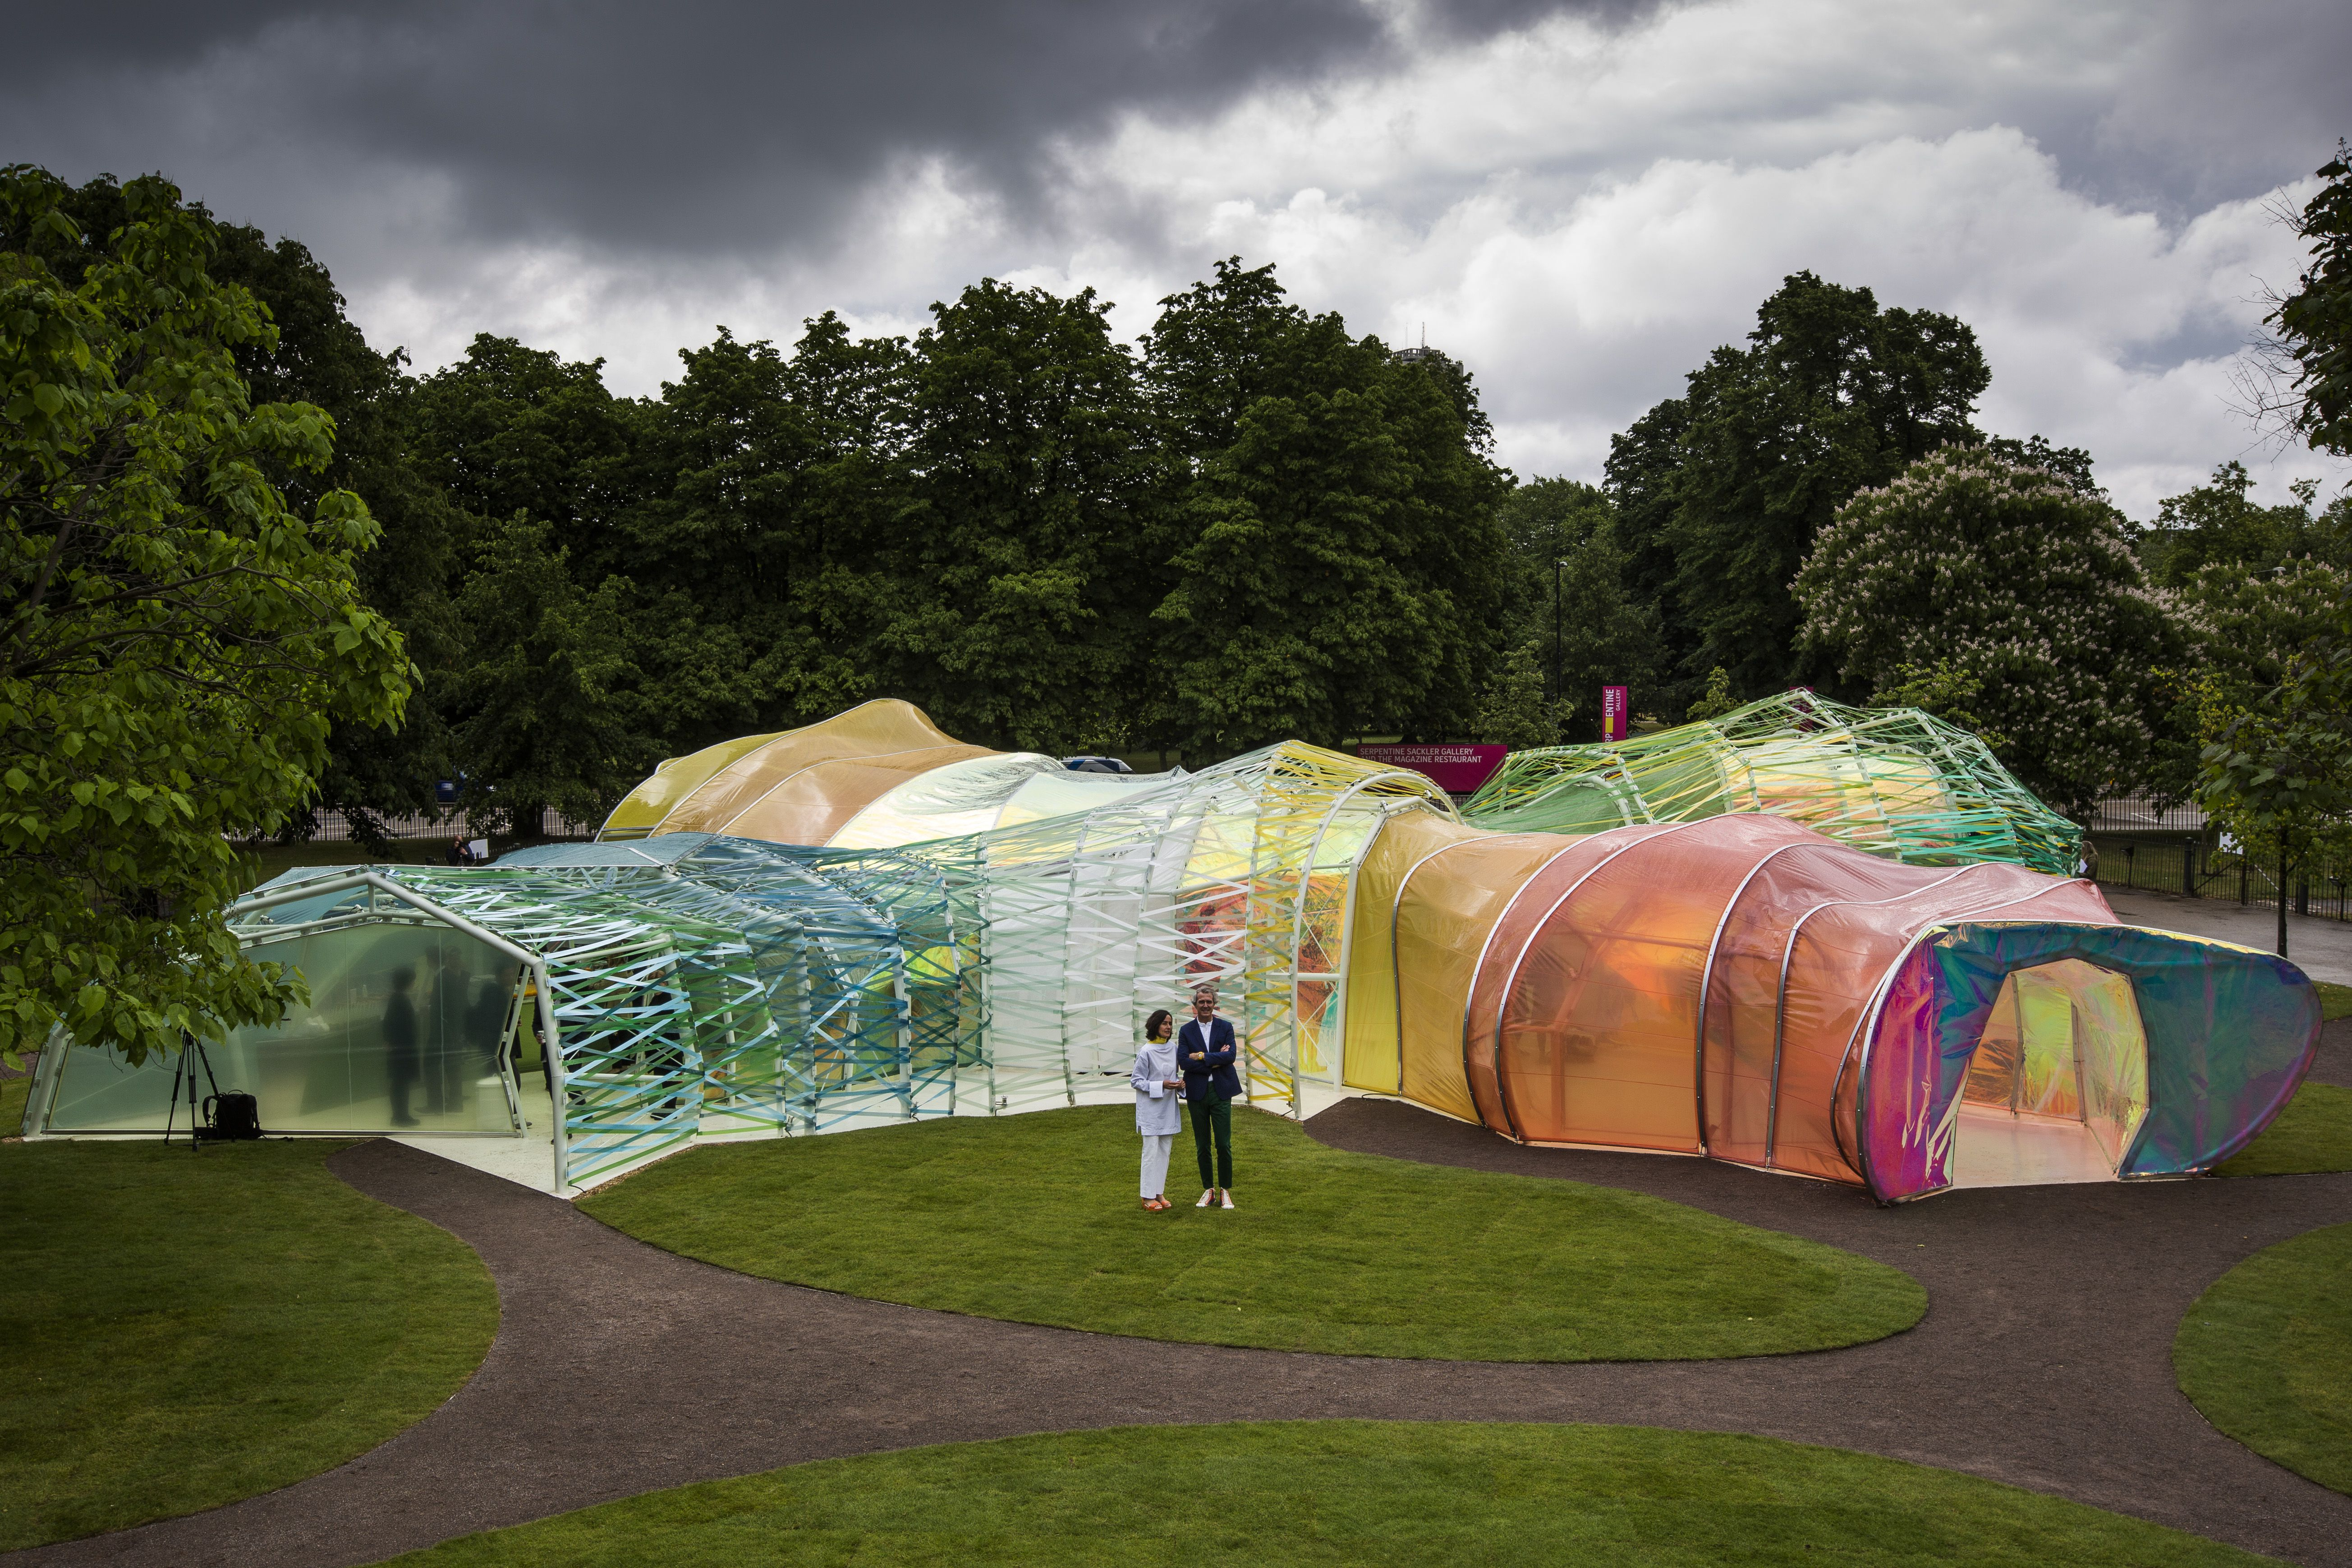 Spanish Architects Jose Selgas and Lucia Cano and the 2015 Serpentine Summer Pavilion